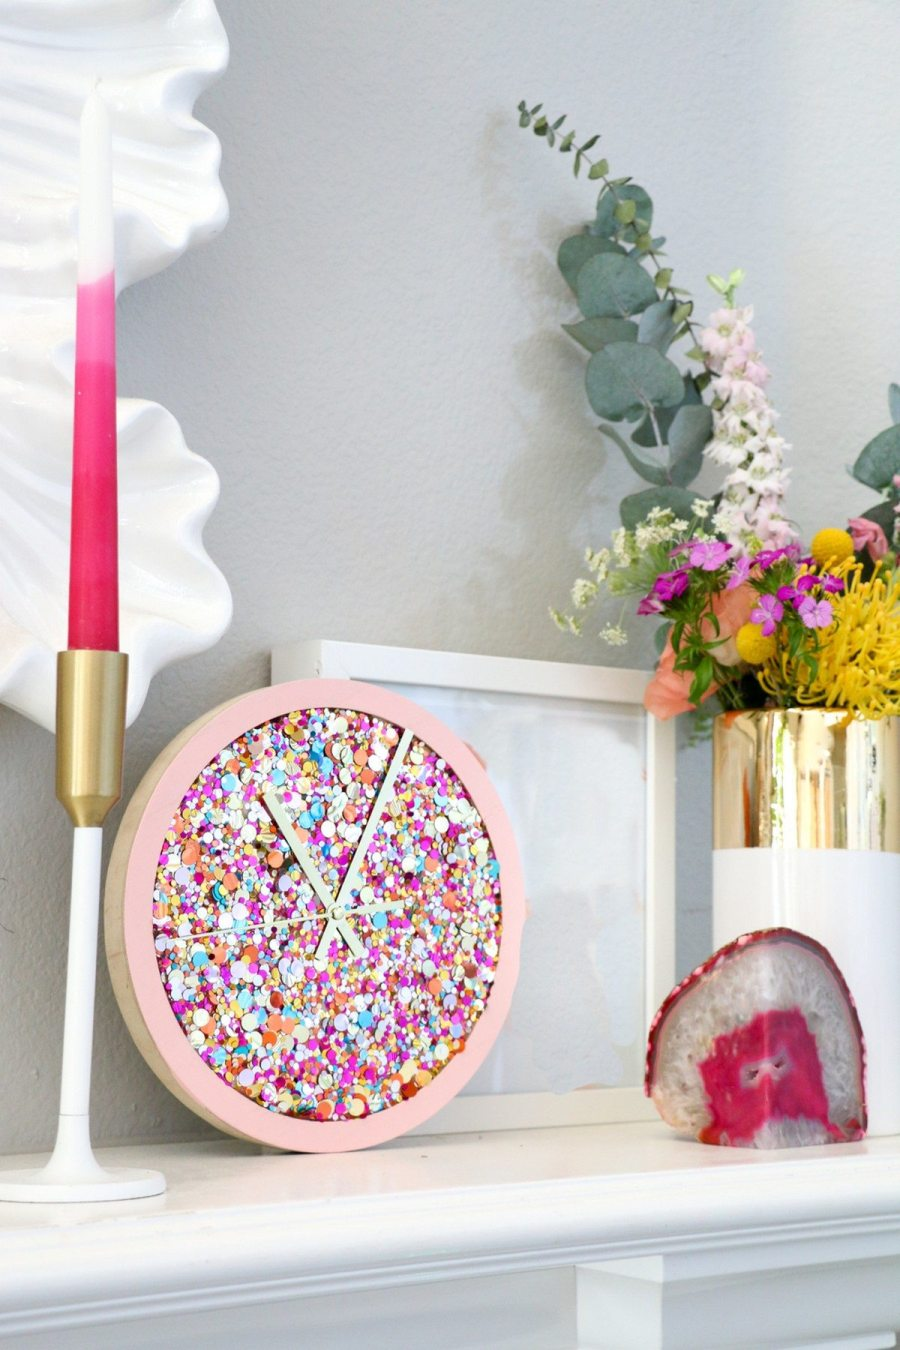 These colorful clocks will brighten up your space adding fun to it, read the tutorials, choose and go craft one or several ones for cheering up your space.